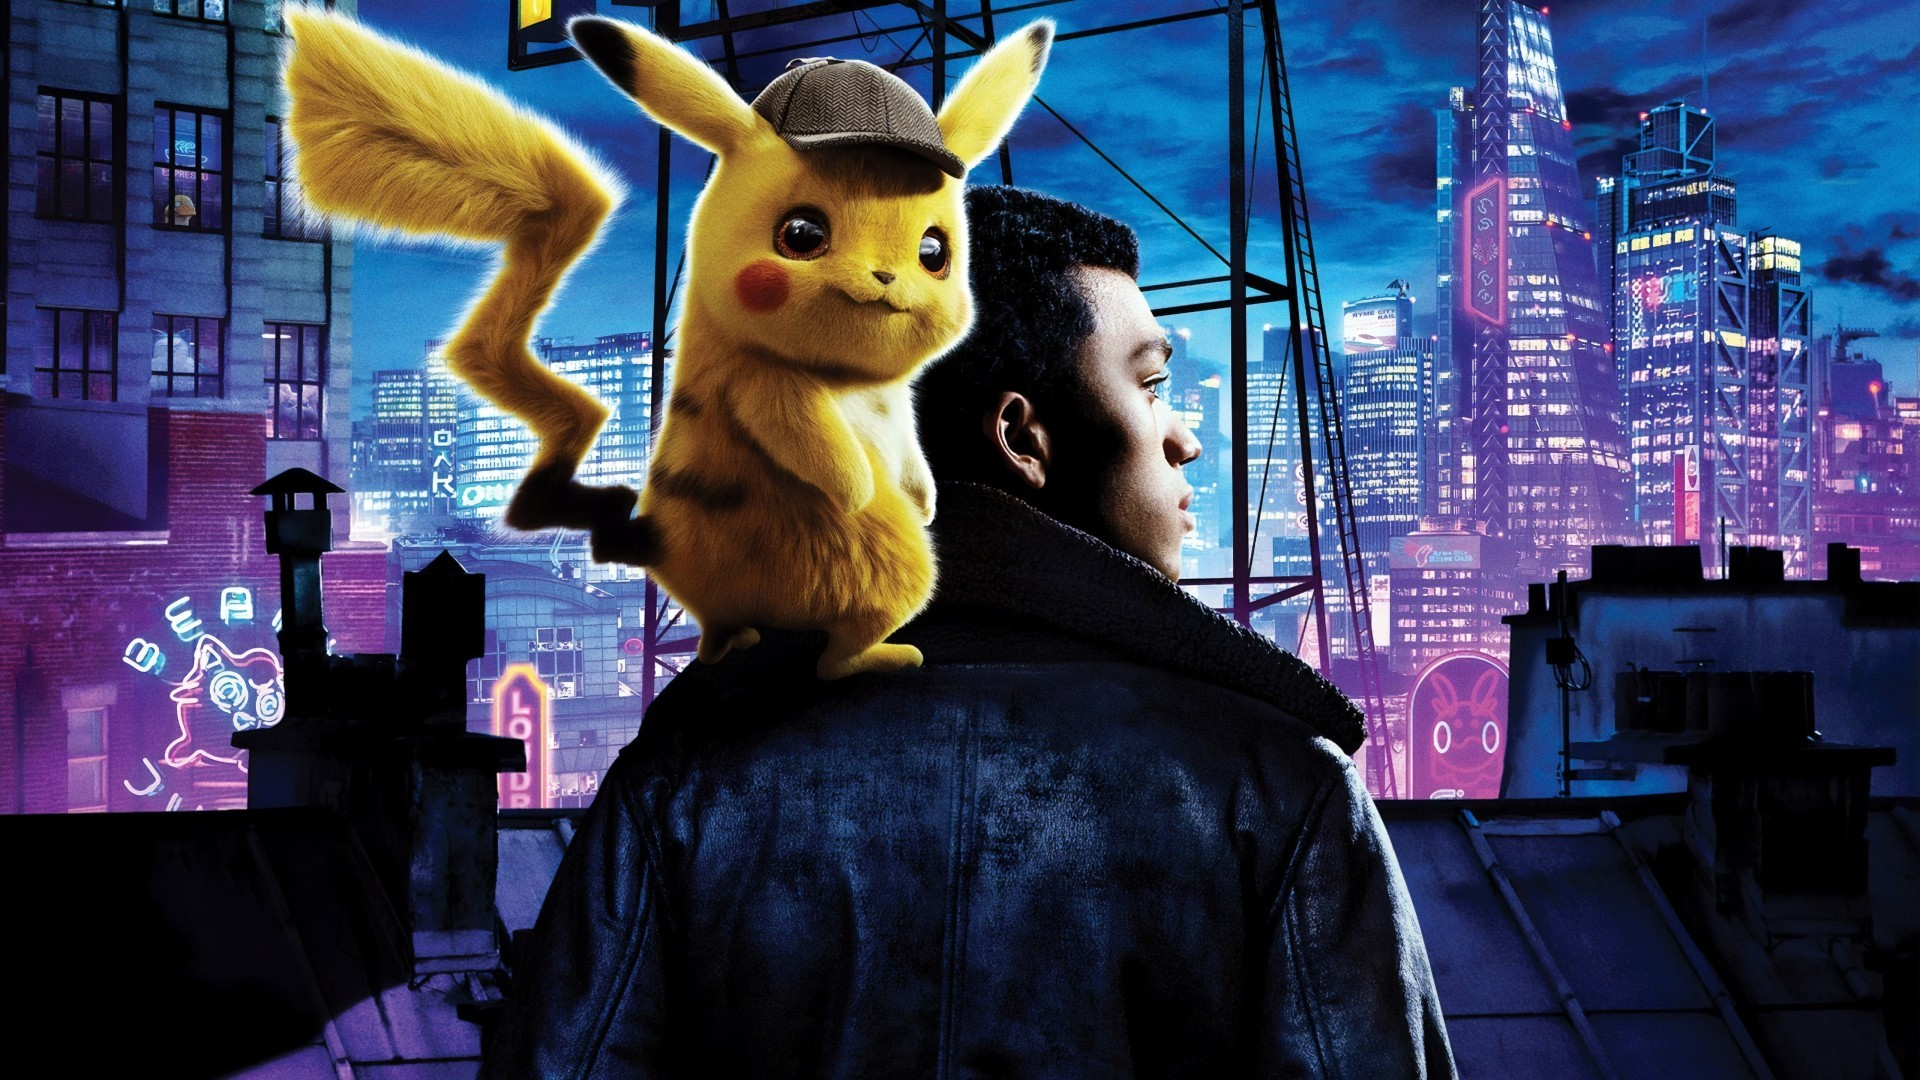 Pikachu Movie Wallpapers All Details Supertab Themes